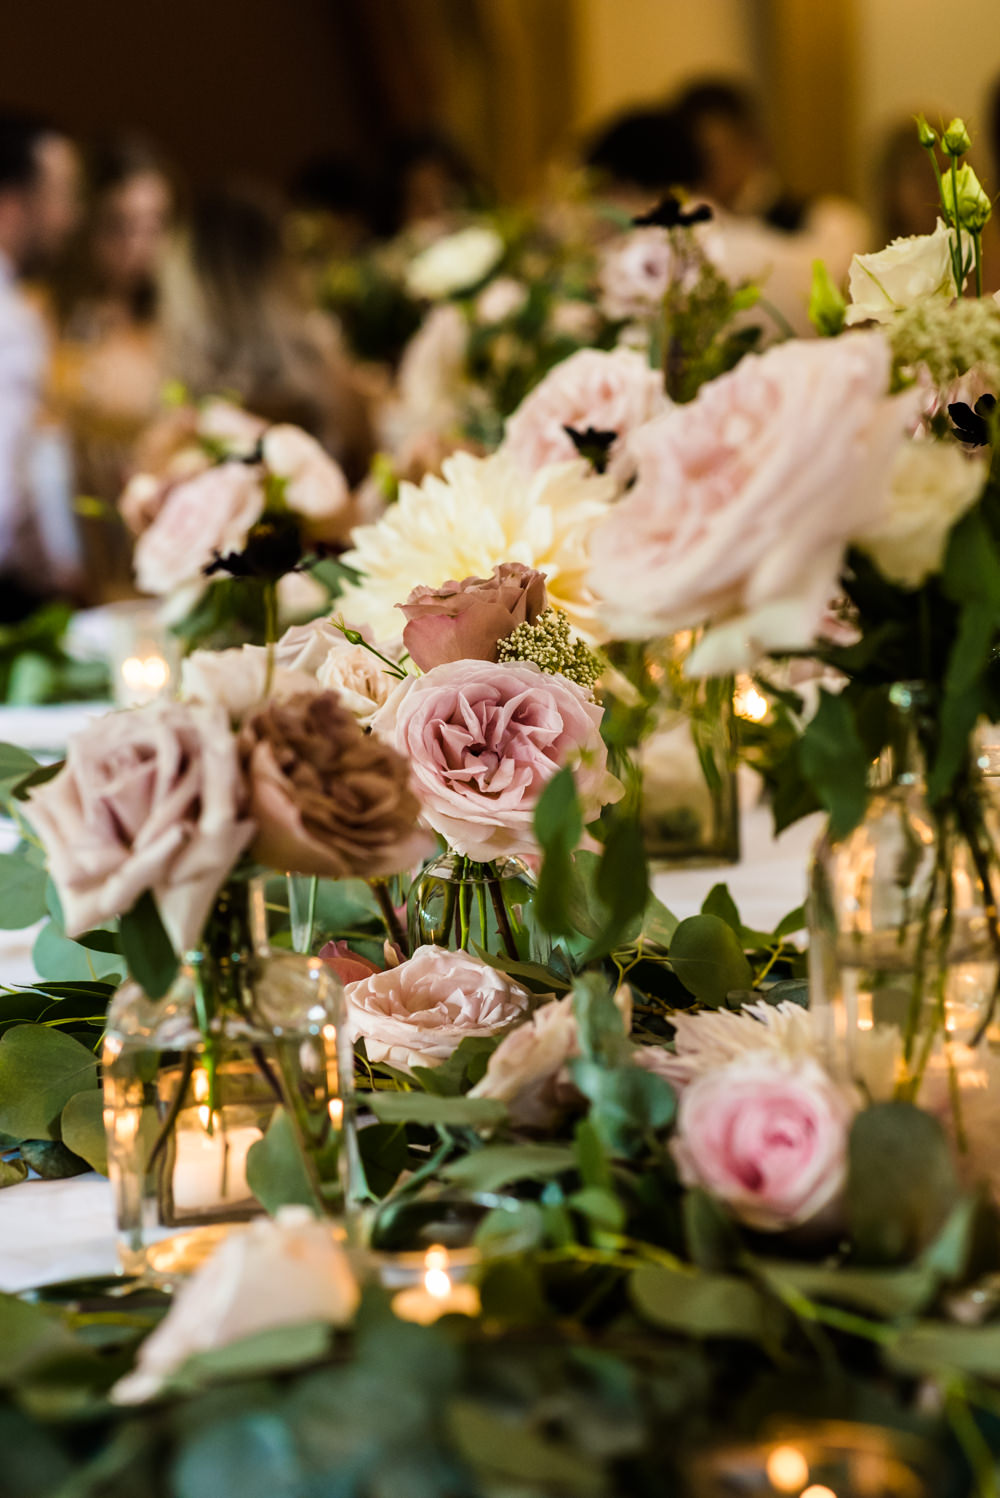 Flowers Floral Antique Rose Pink Cream Bud Vases Greenery Mill Barns Wedding Cassandra Lane Photography